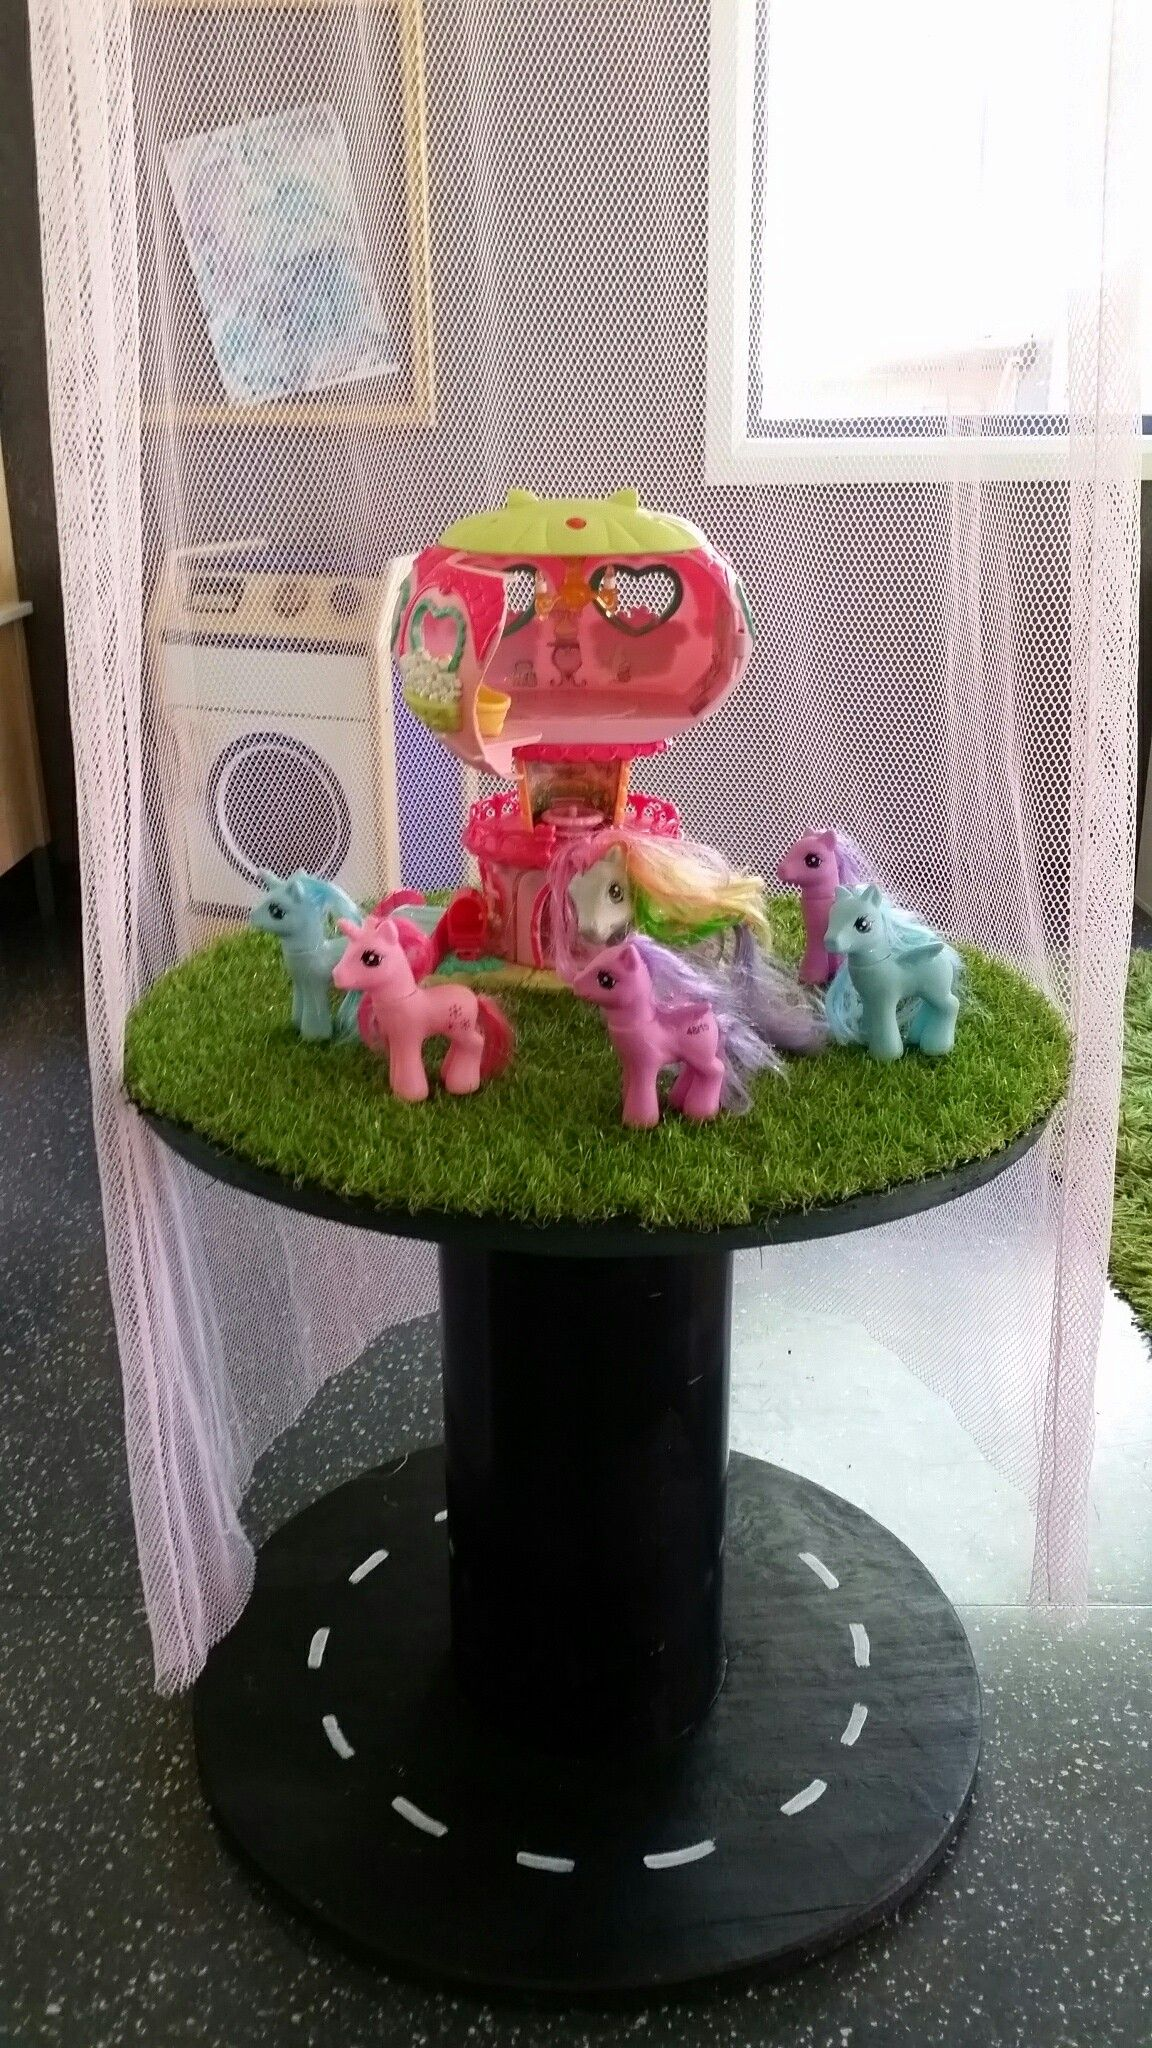 Cable Wheel Early Childhood My little pony garden